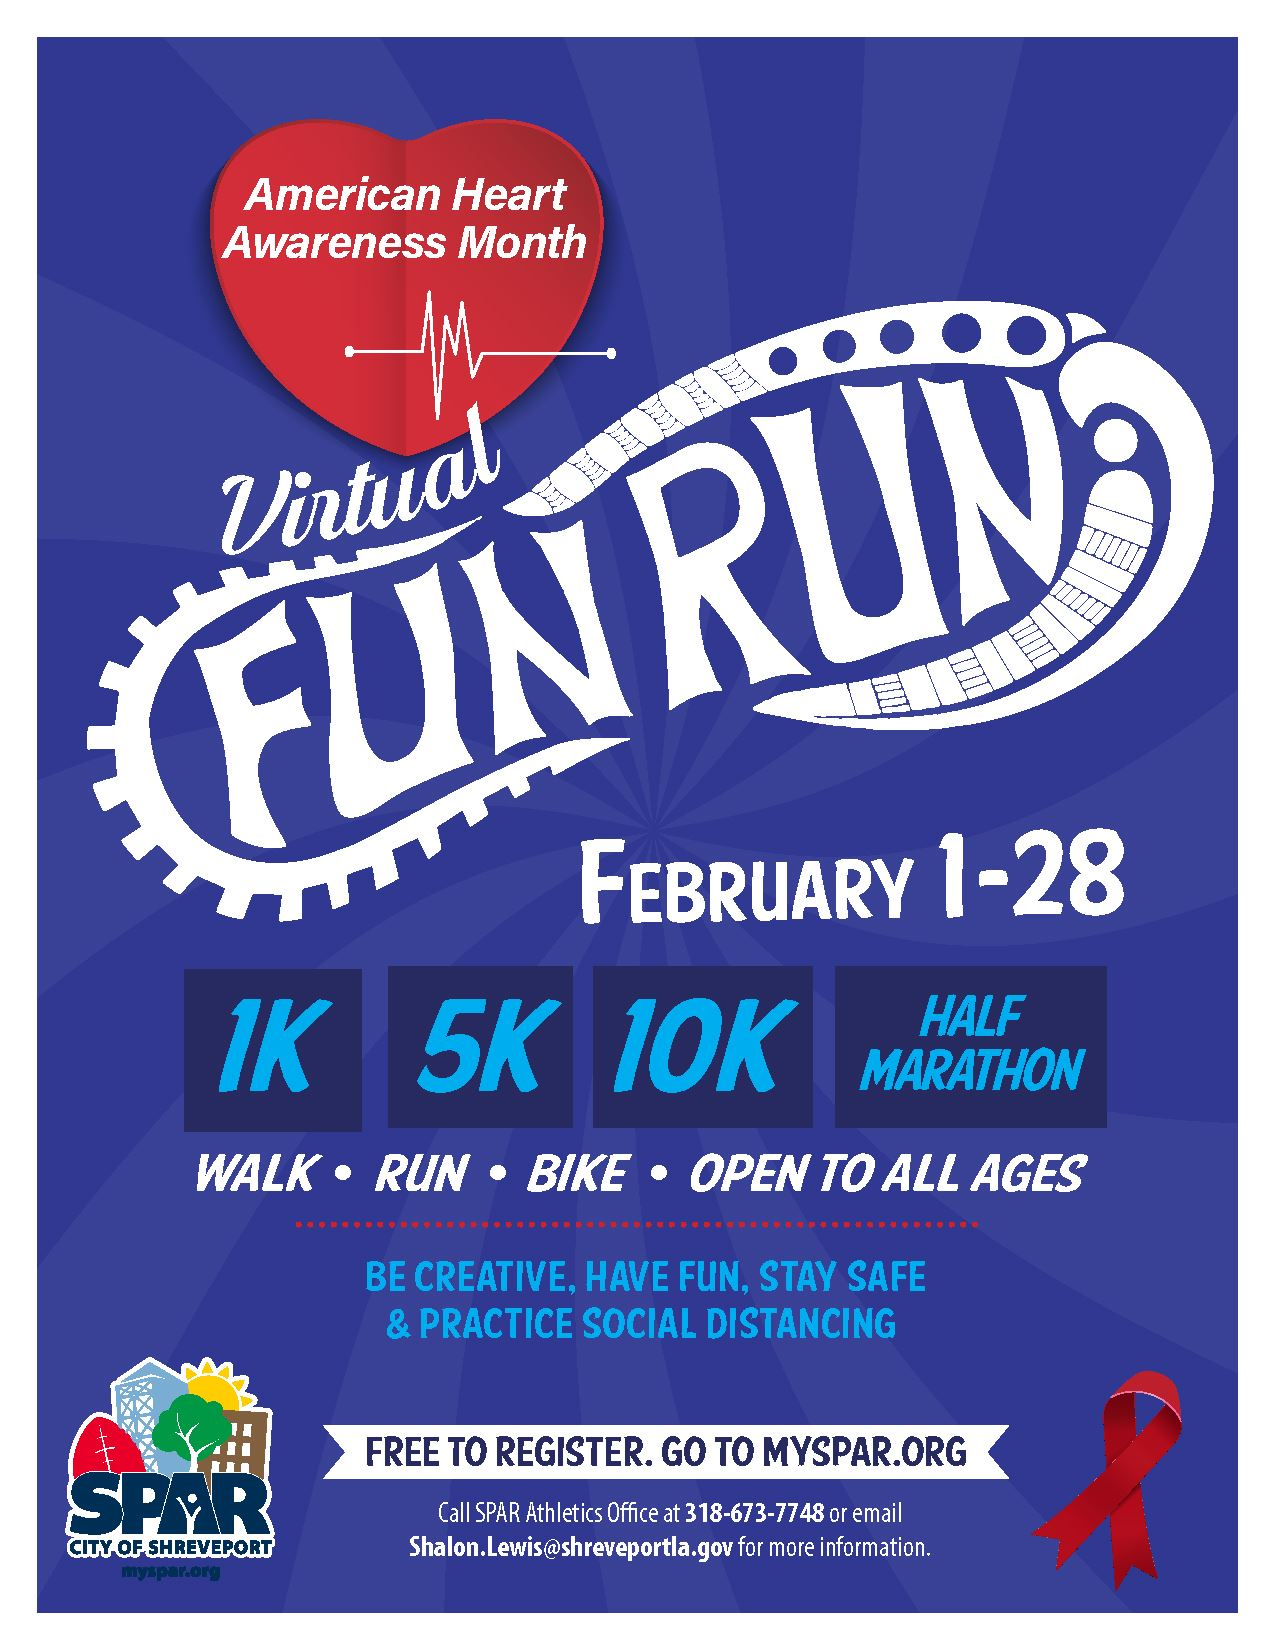 2021 02 American Heart Association Fun Run_flyer